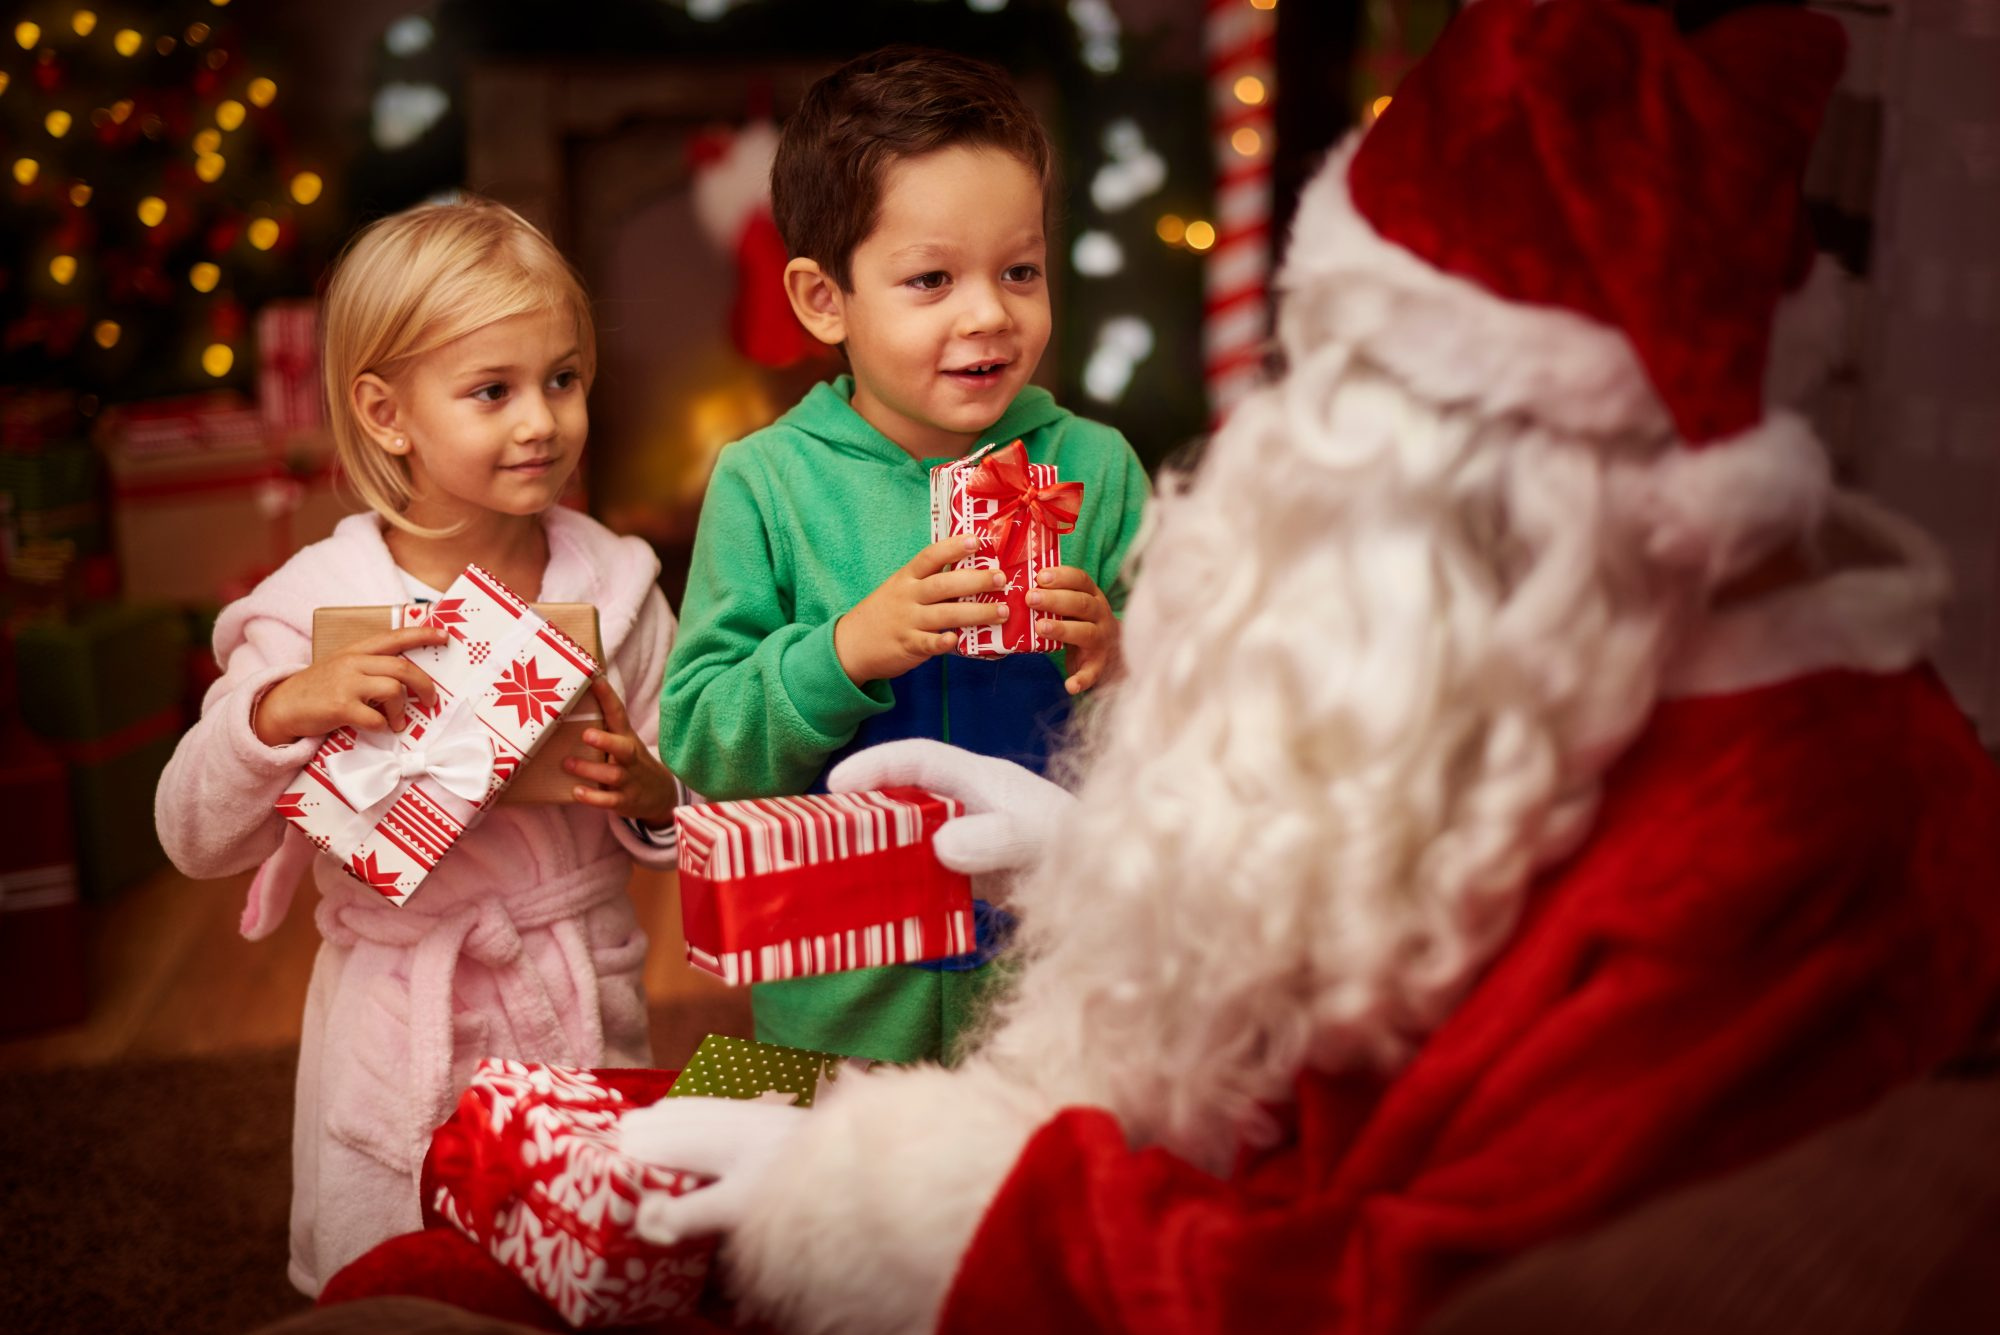 Operation Santa Lets You Grant Holiday Wishes for Kids in Need